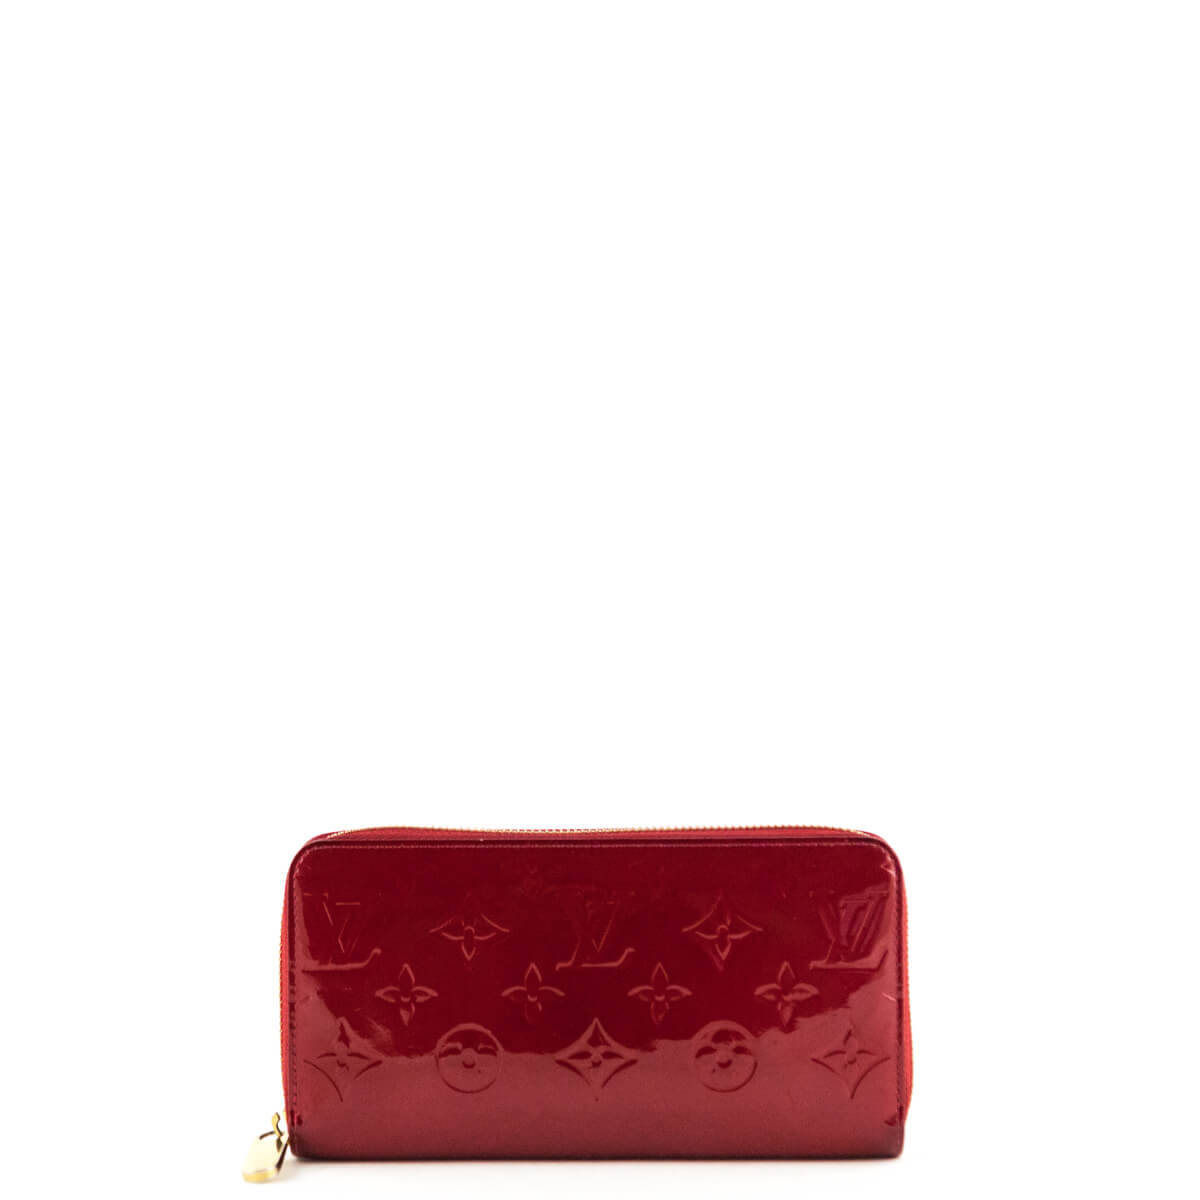 Louis Vuitton Red Empreinte Vernis Zippy Wallet - LOVE that BAG - Preowned  Authentic Designer Handbags ... 587a3d51b